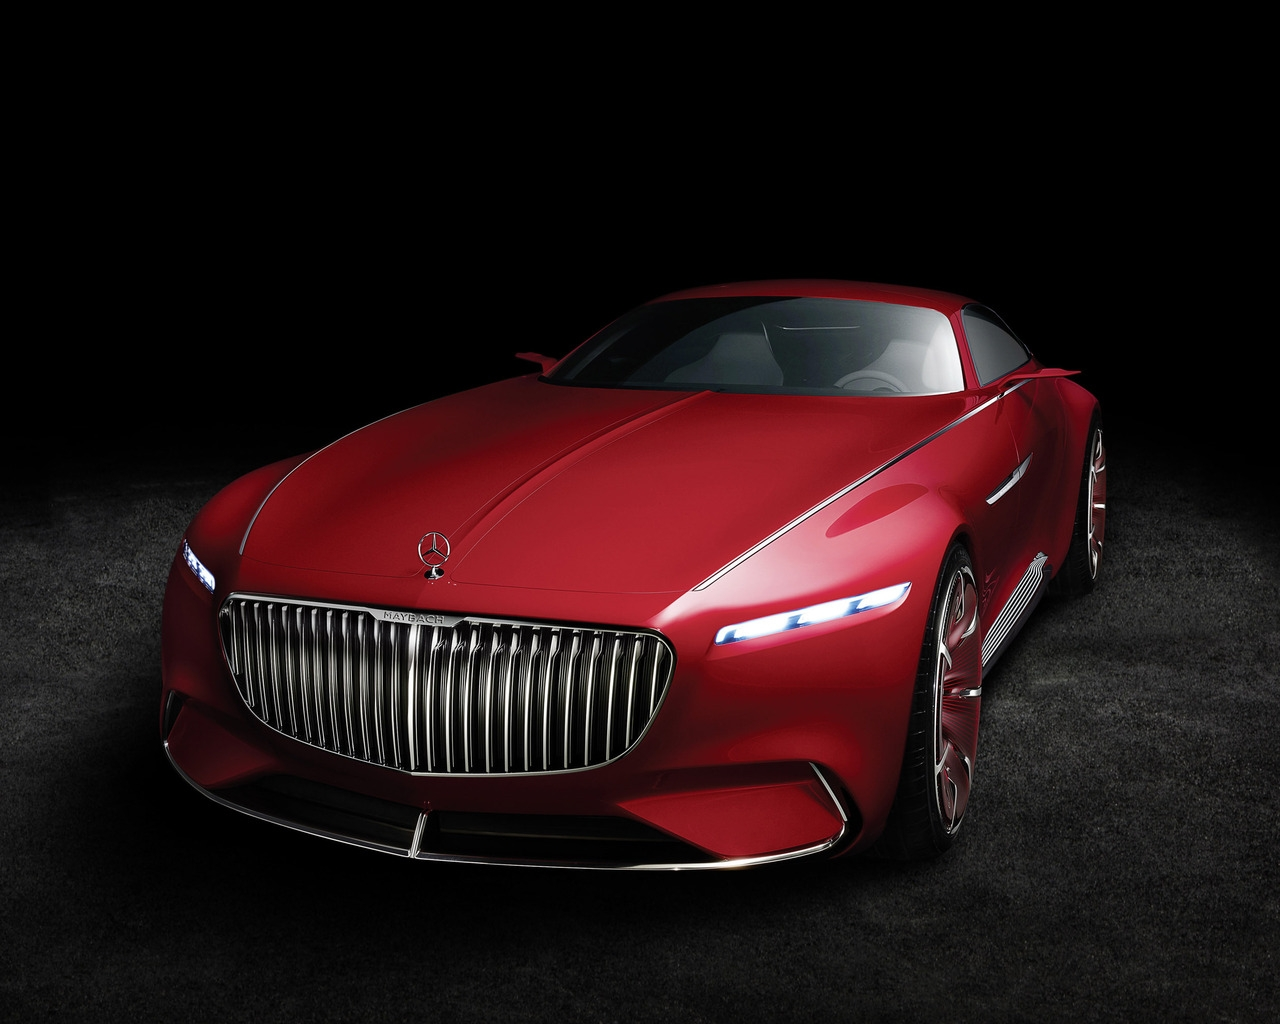 2016 Vision Mercedes Maybach 6 for 1280 x 1024 resolution